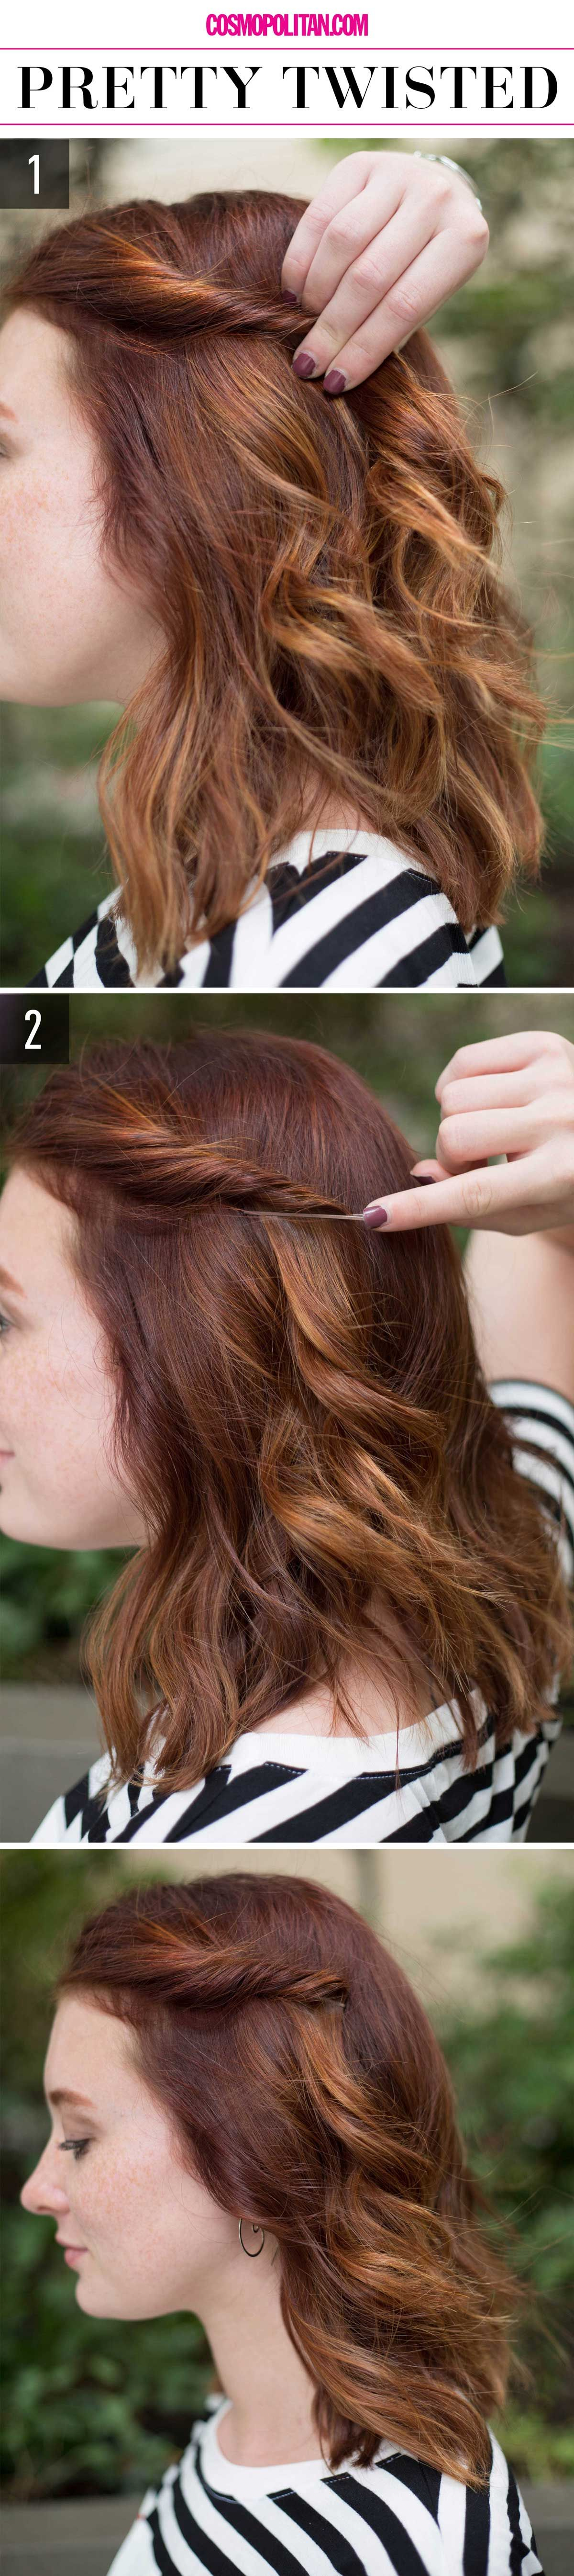 15 Super-Easy Hairstyles For When You\'re Feeling Particularly Lazy ...